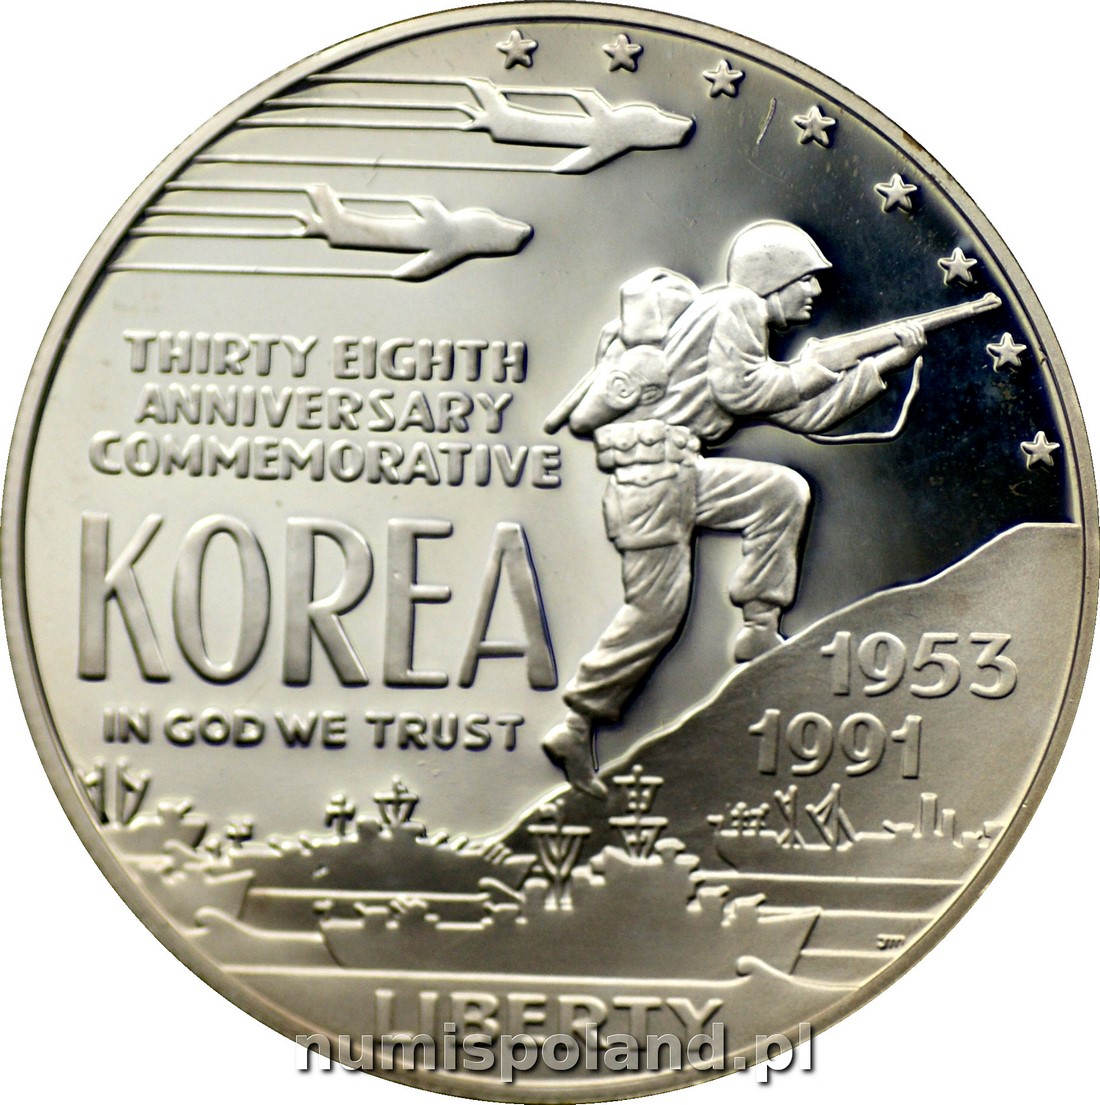 USA: 1 dolar 1991 rok. KOREA